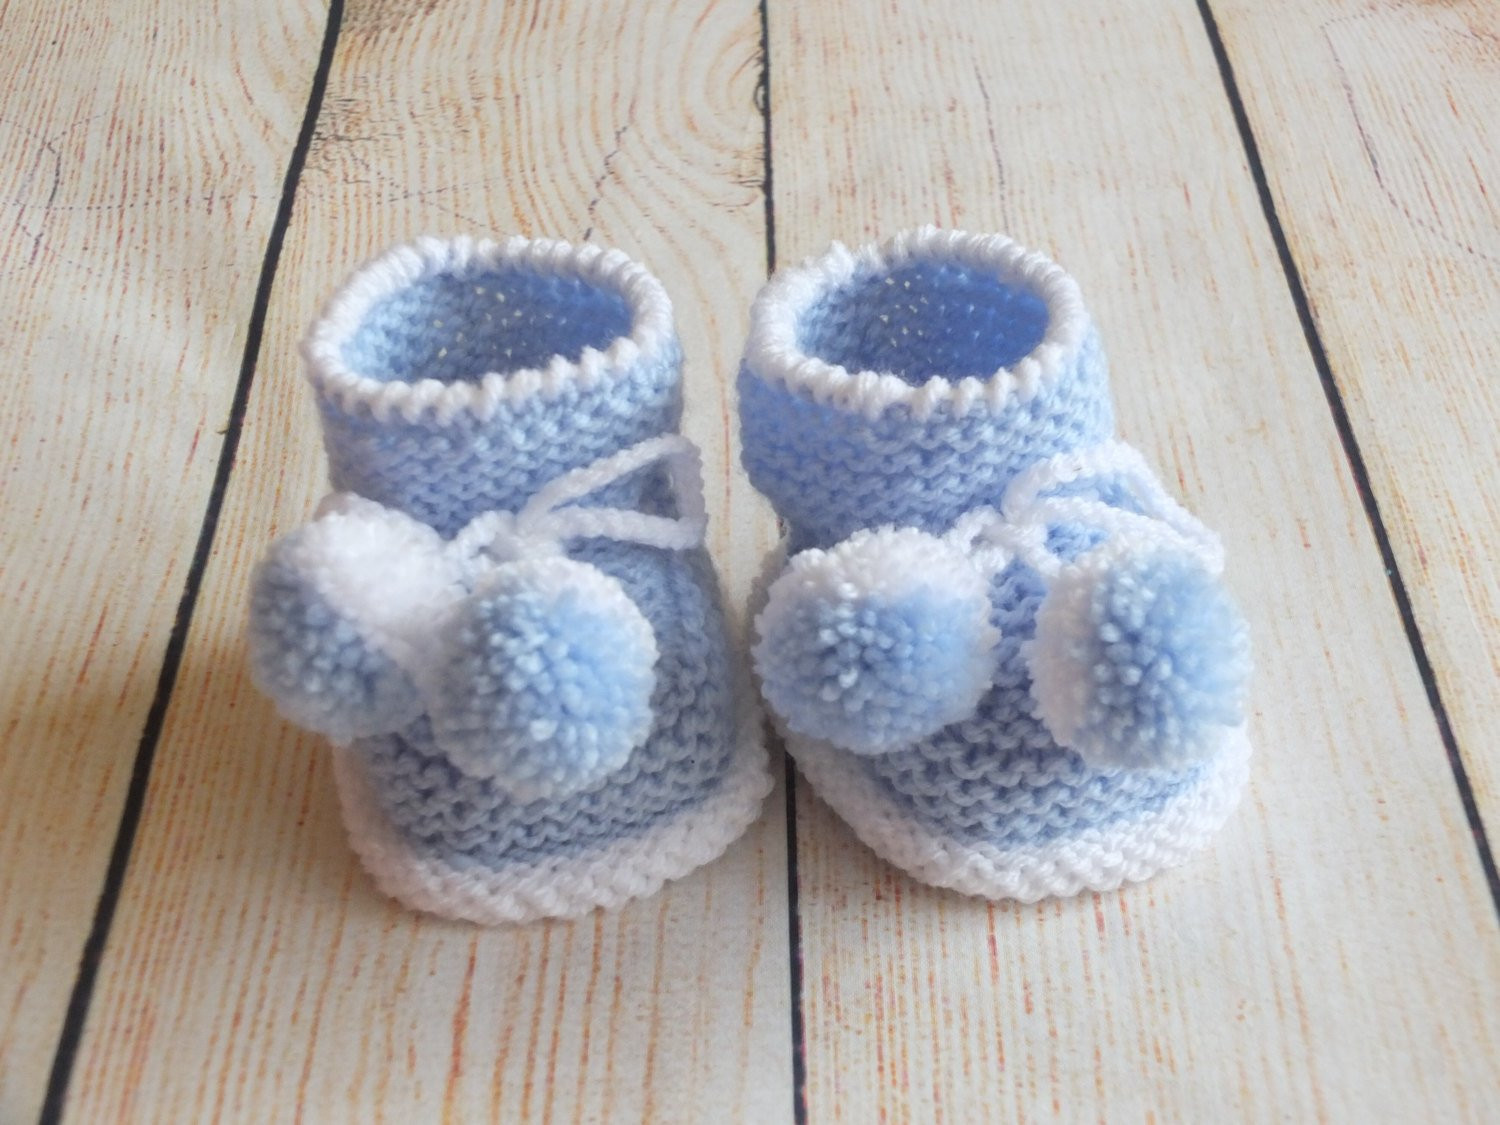 Knitted Baby Booties Lovely Knit Baby Booties Knitted Baby Booties Baby Boy Of Amazing 49 Photos Knitted Baby Booties